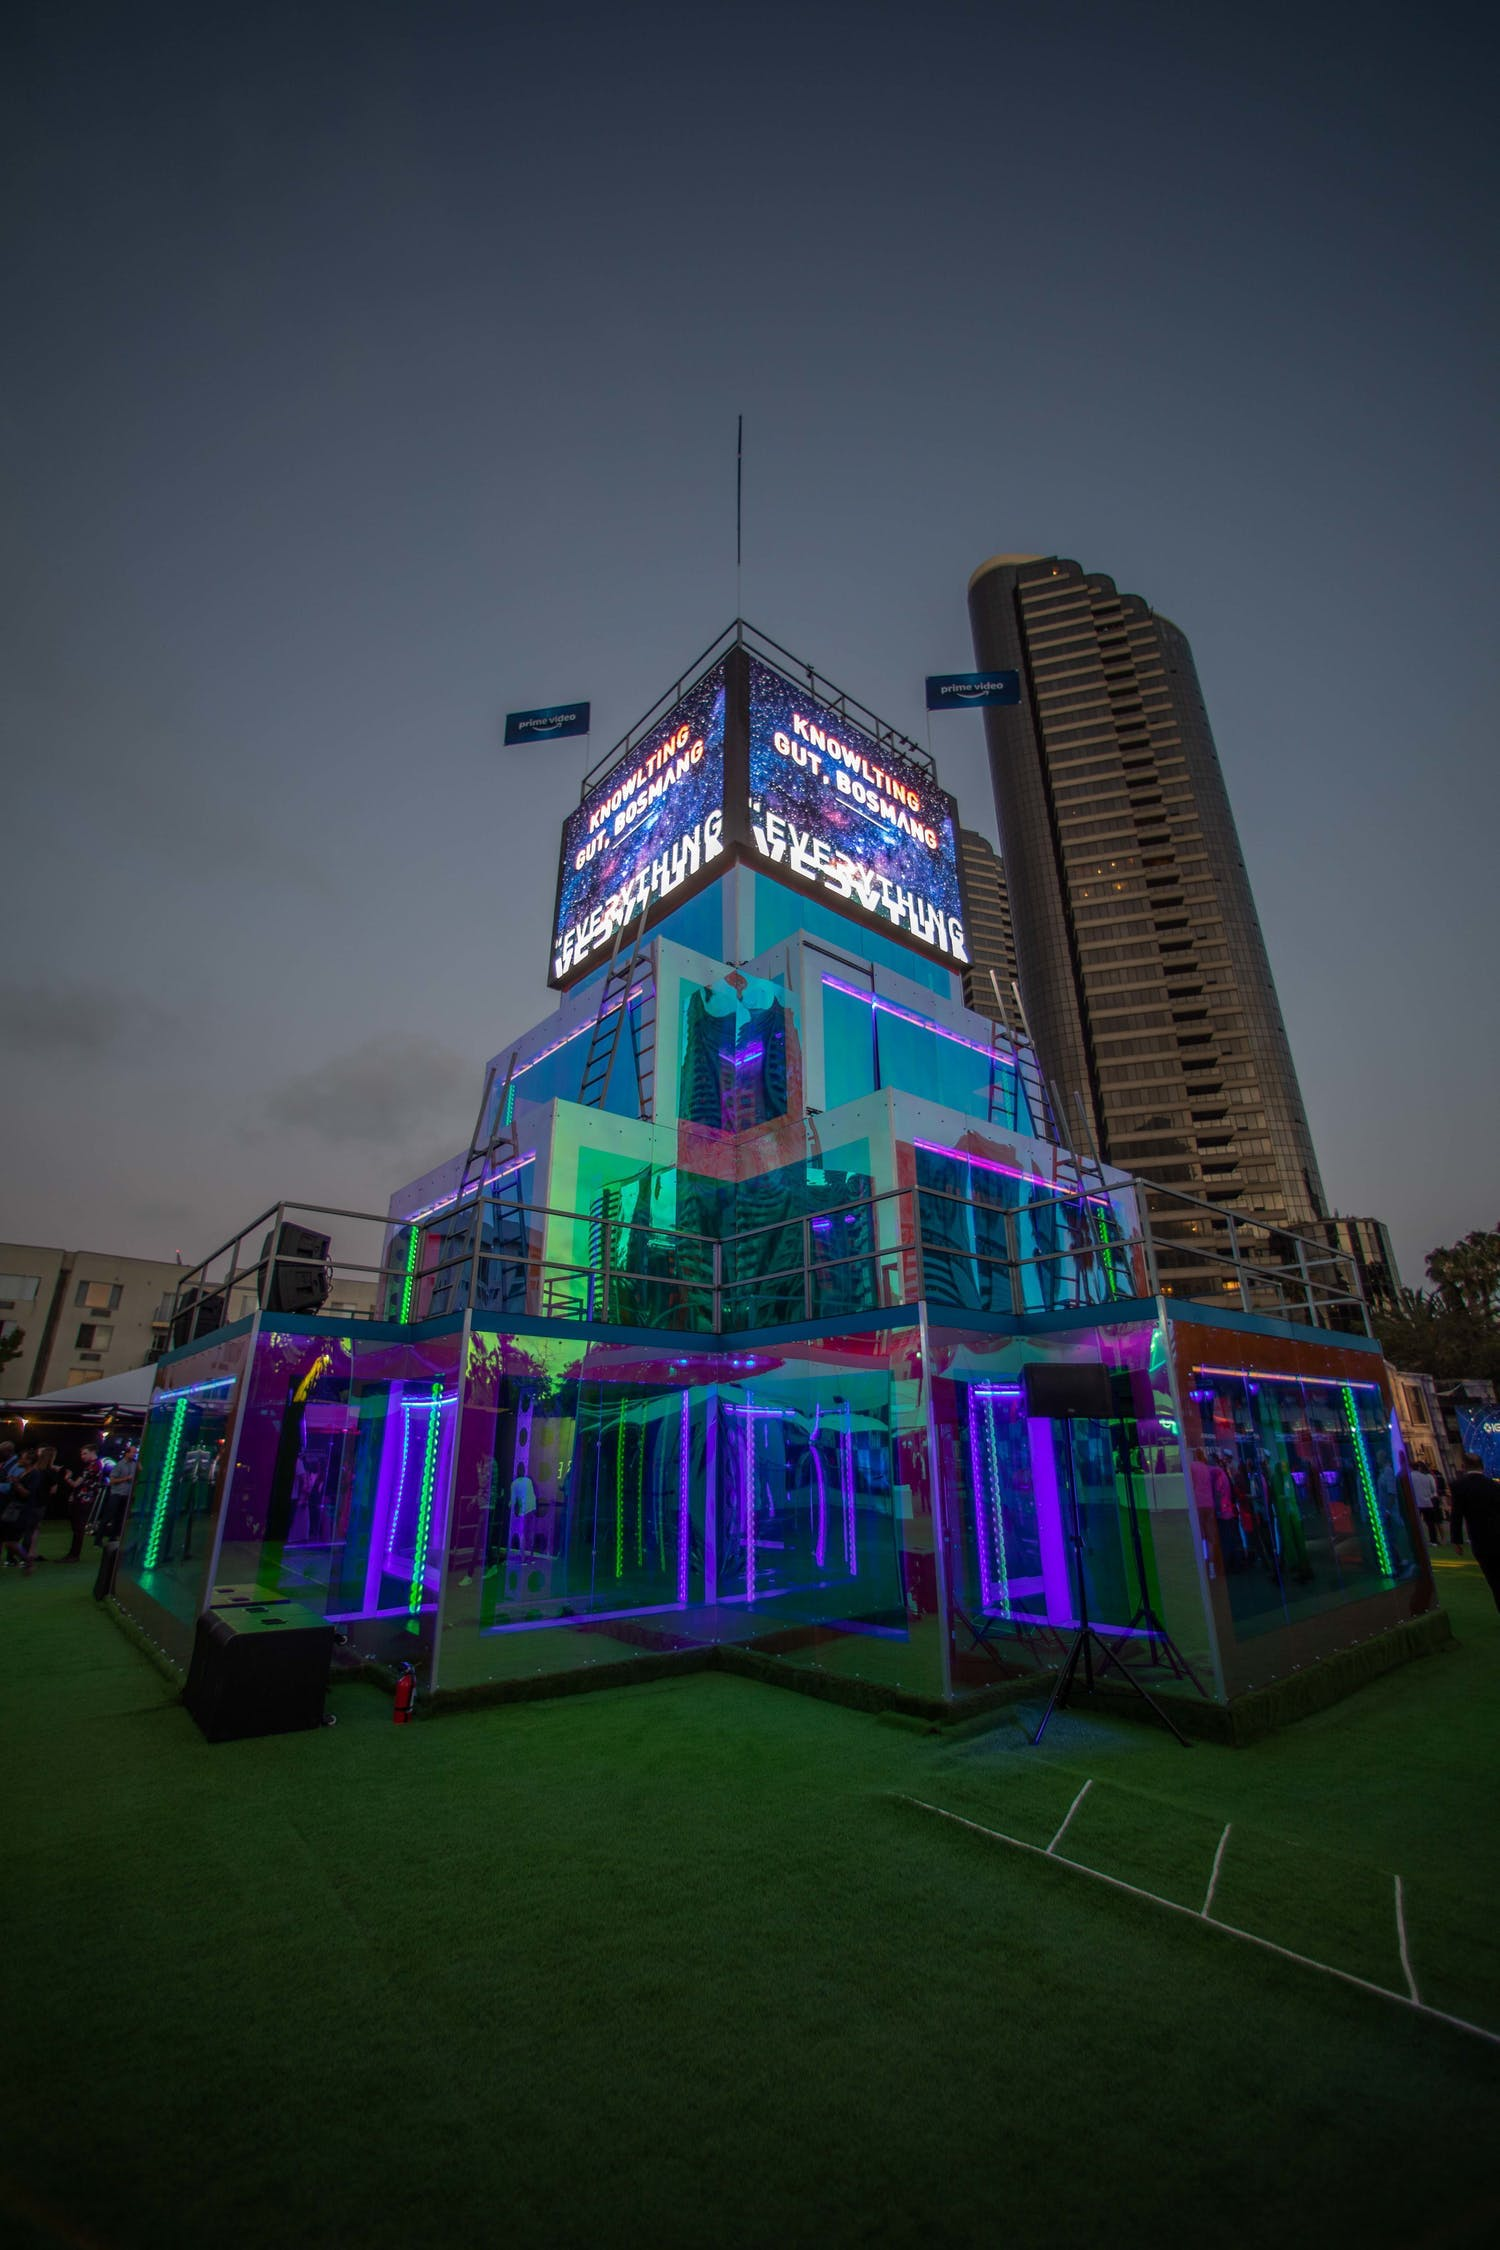 Taking place on a terrace in a city, LED screens are on top of a tower and colored screens are staggered on the rest for private event | PartySlate